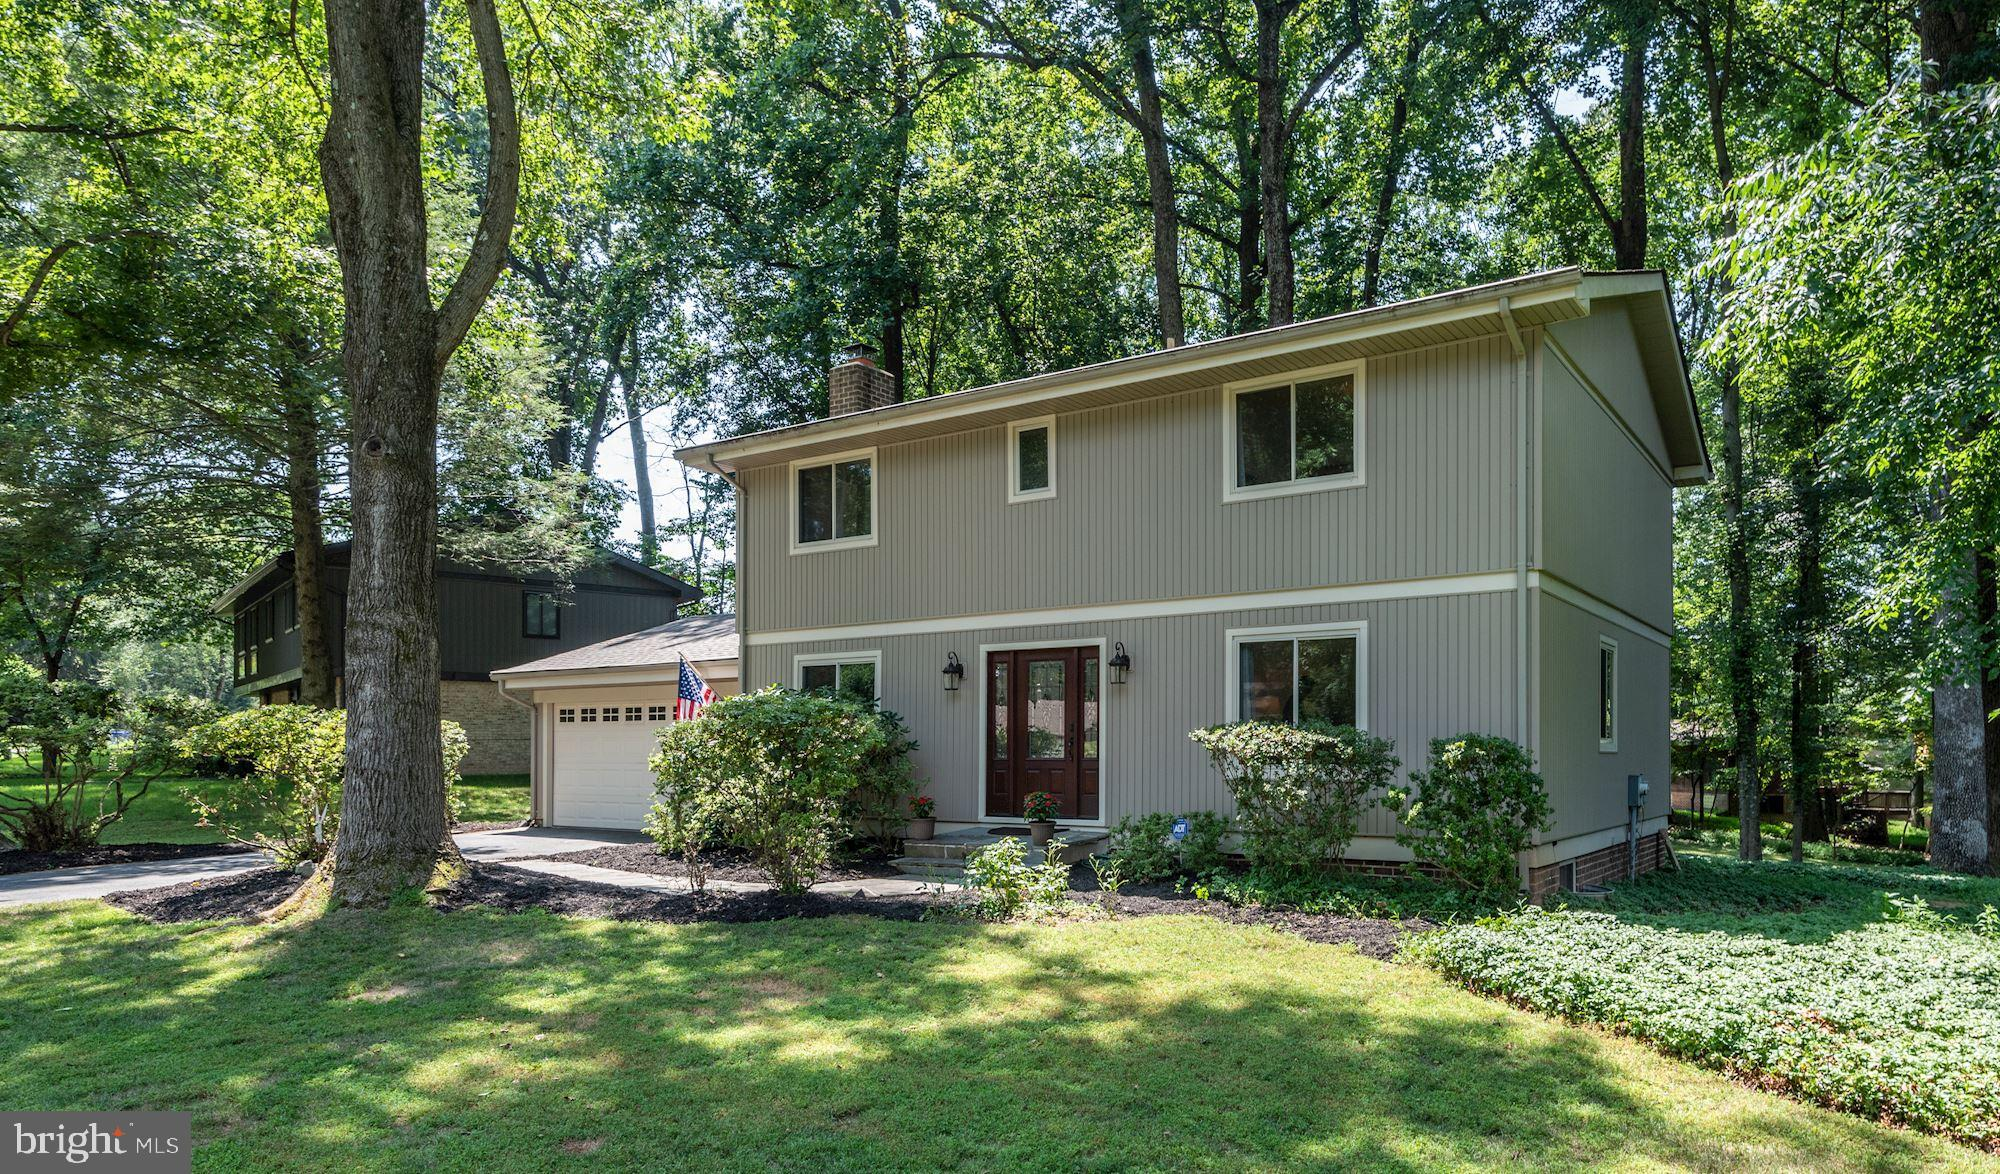 15008 GOOD MEADOW COURT, NORTH POTOMAC, MD 20878